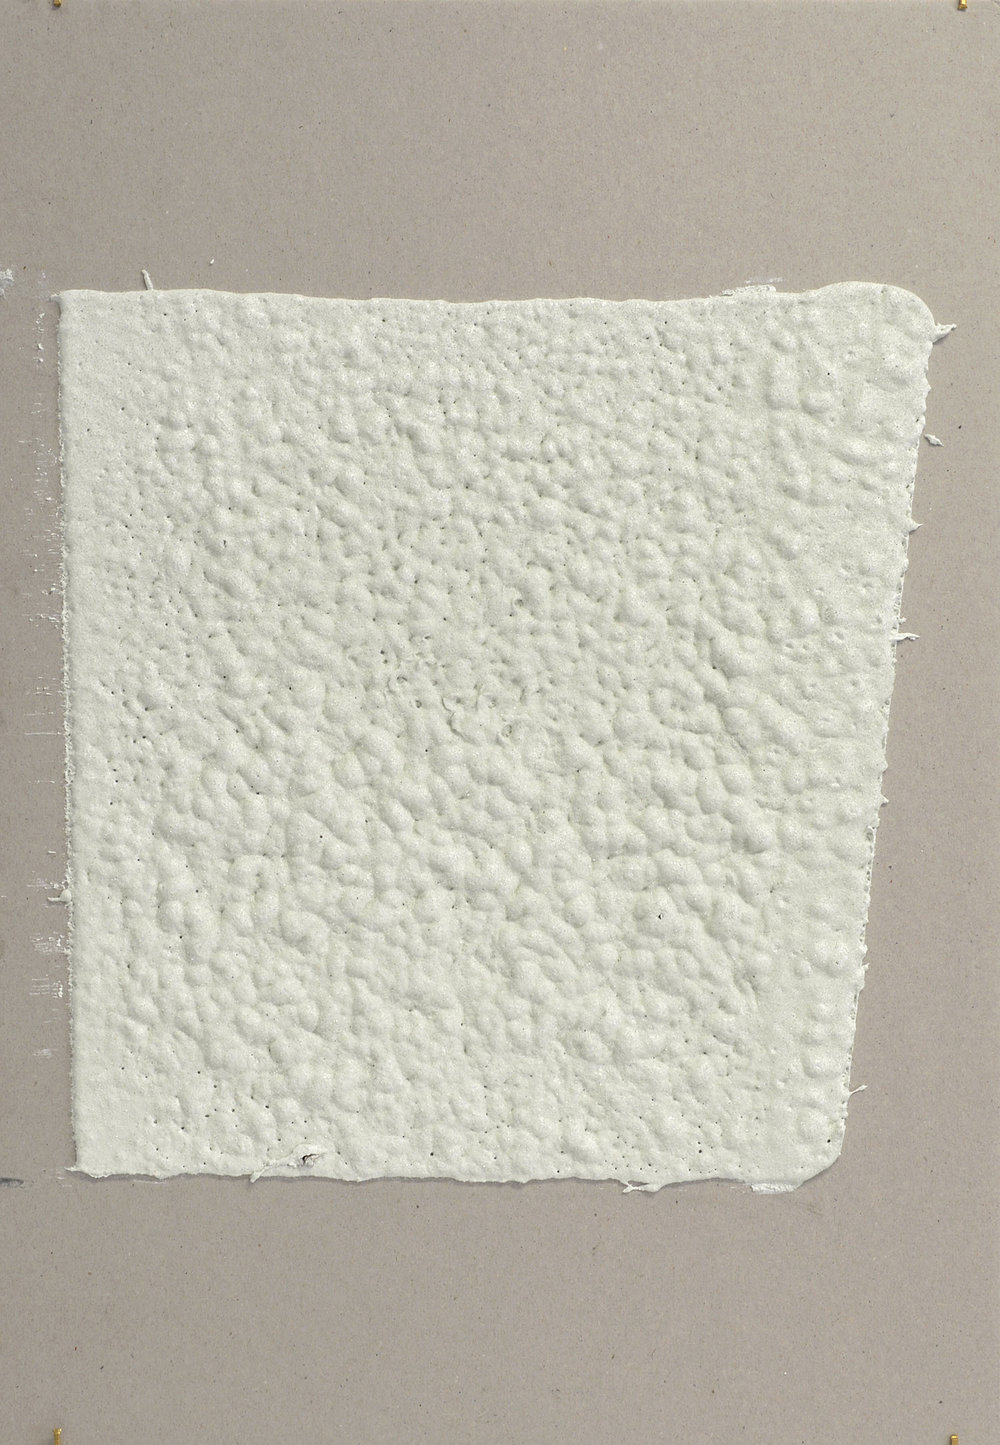 12in (W), 2.27mm (T), White, Random mark, Manual marking, Lexington Ave, E89 St int,  2018 Thermoplastic paint, reflective glass particles on grey board 35cm x 50cm